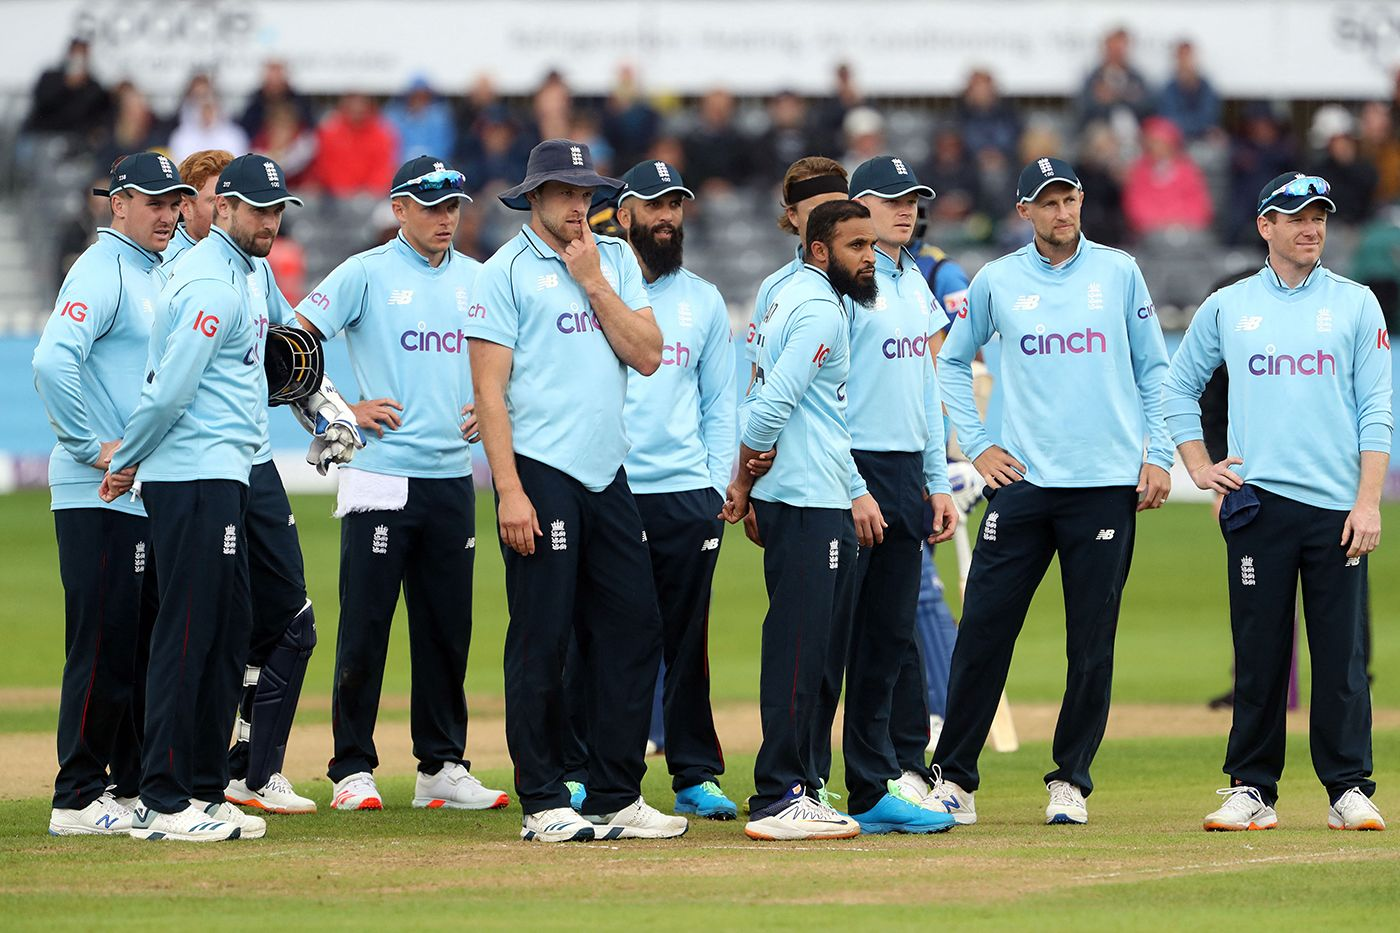 Eng vs Pak 2021 - England ODI squad forced to self-isolate after positive Covid-19 tests